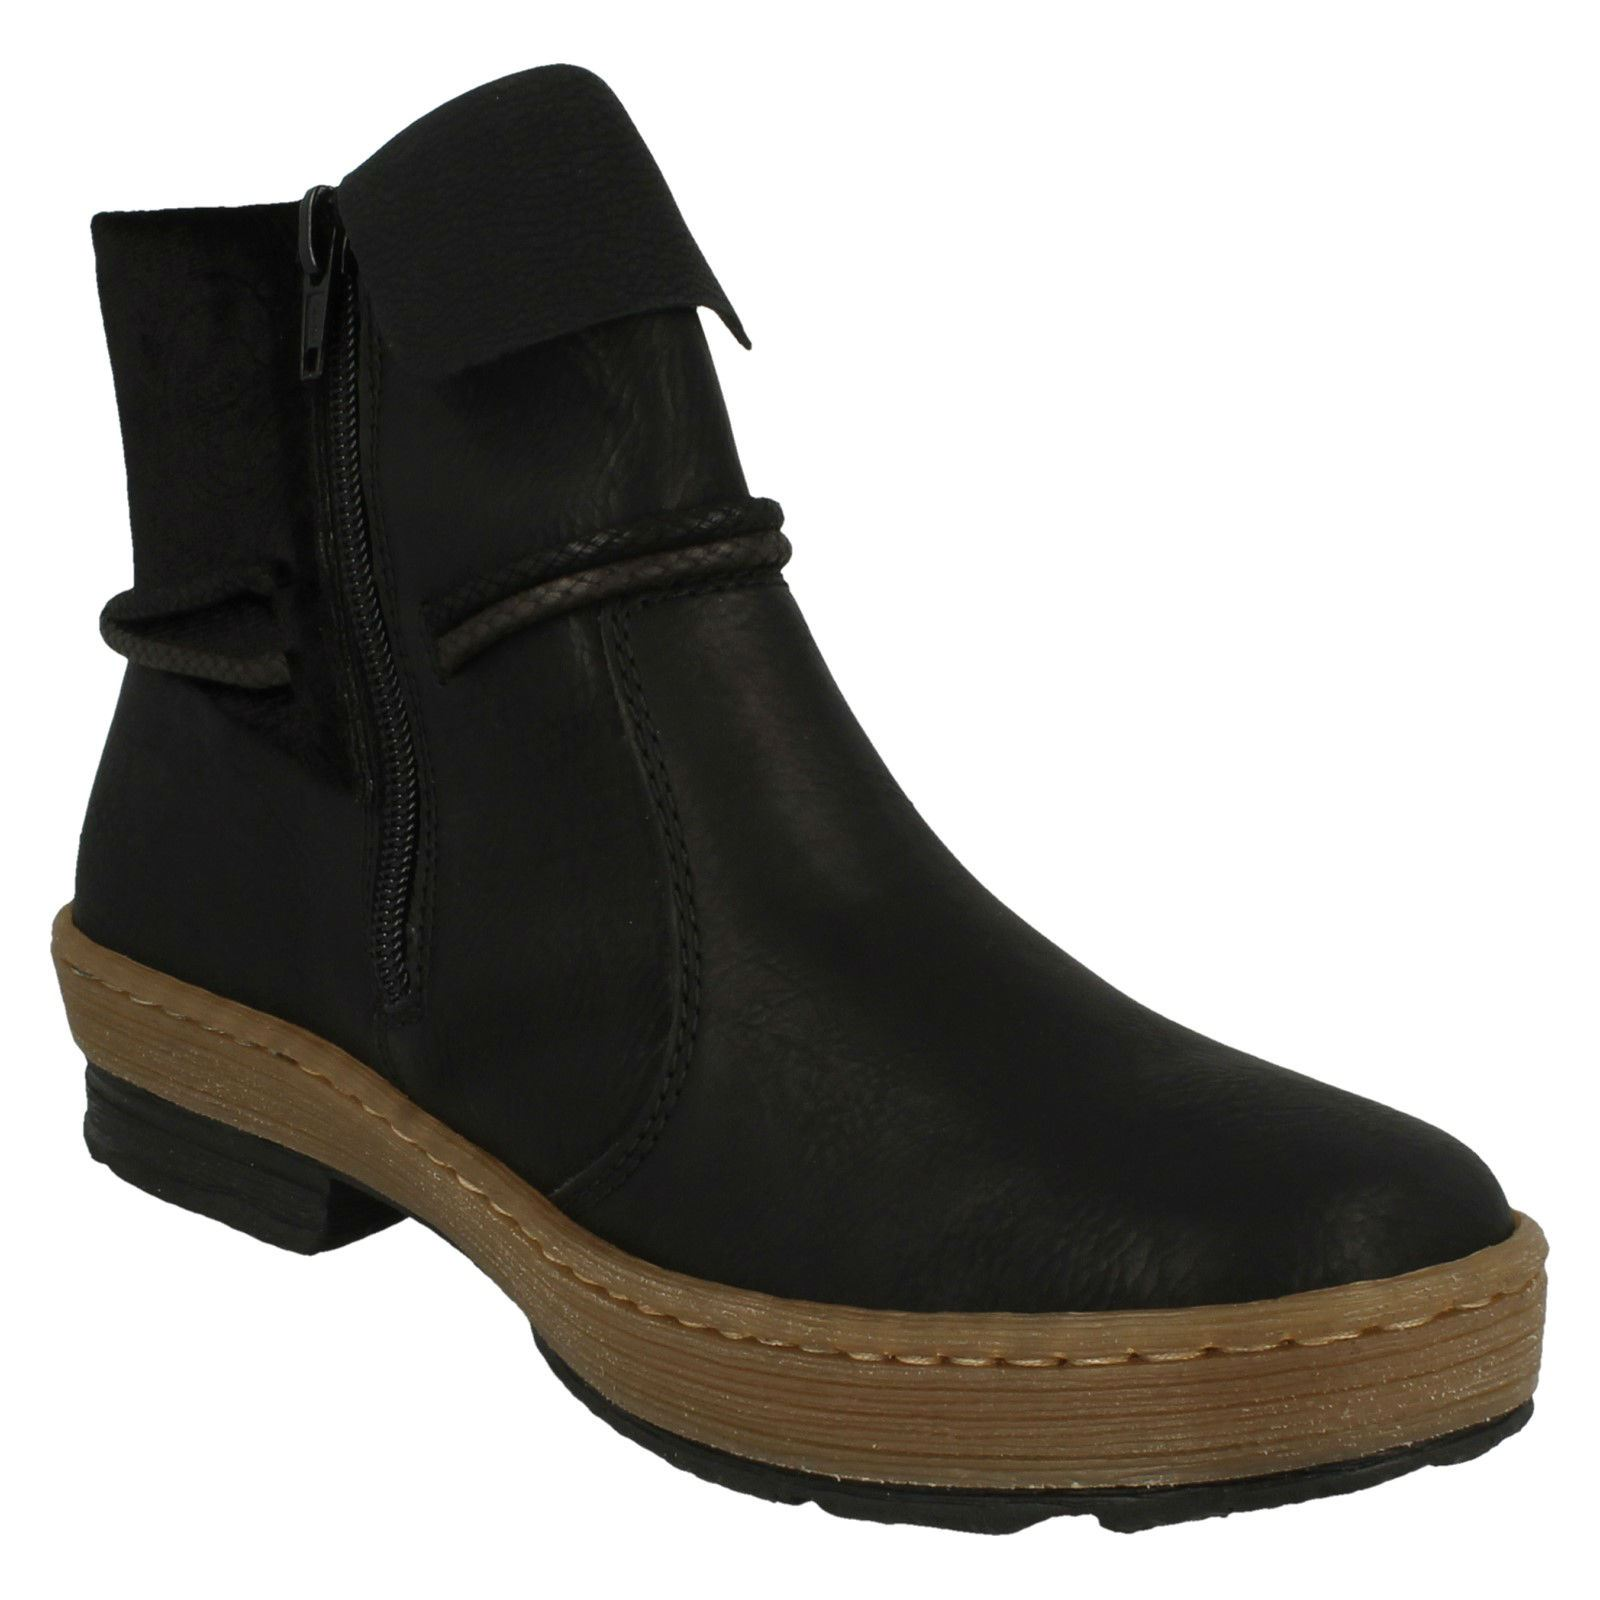 Womens Womens Womens Rieker Casual Ankle Boots - Z6771 563688